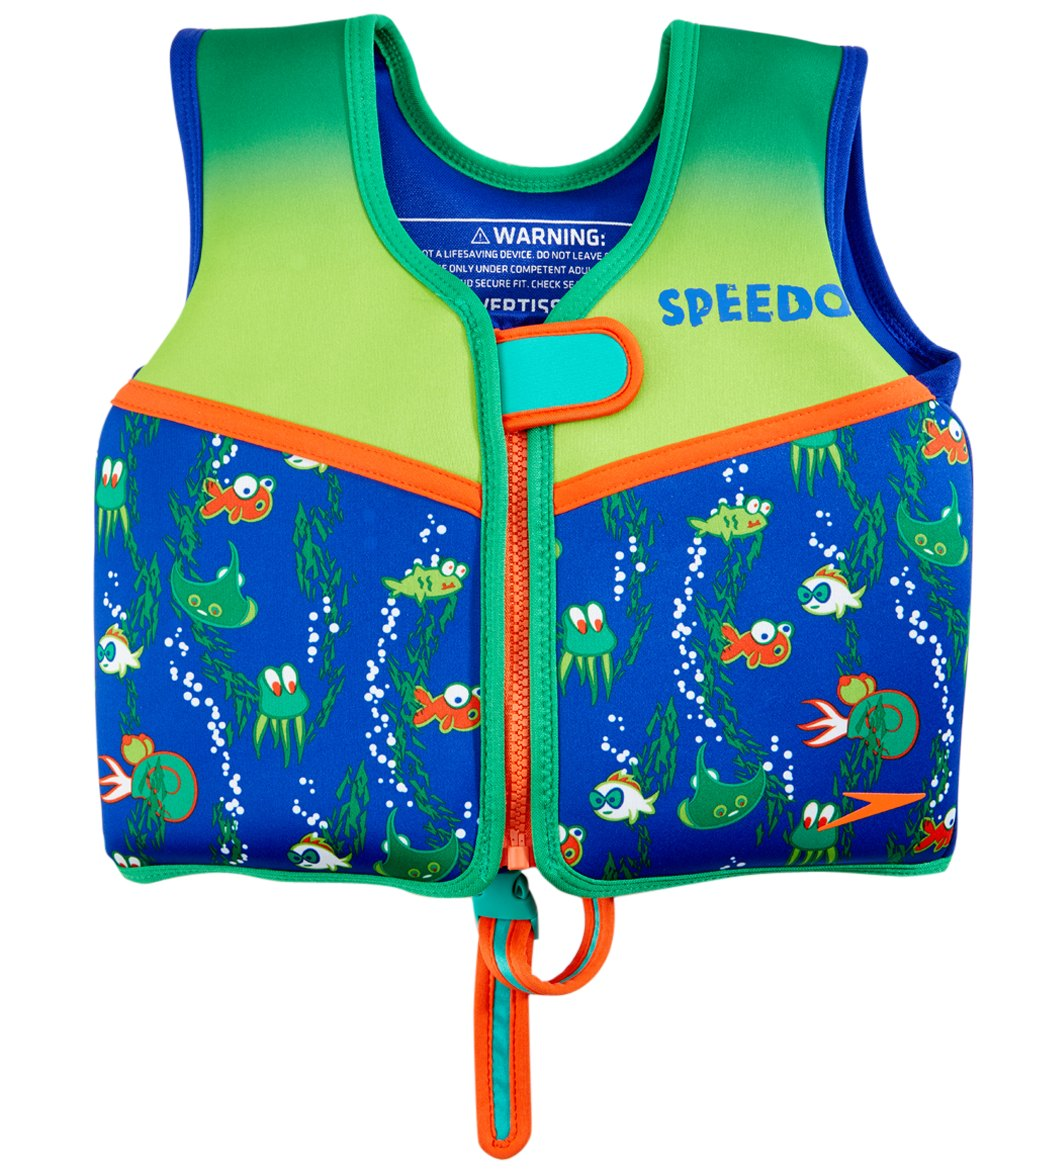 SwimSchool Level 2: Swim Vests - YouTube